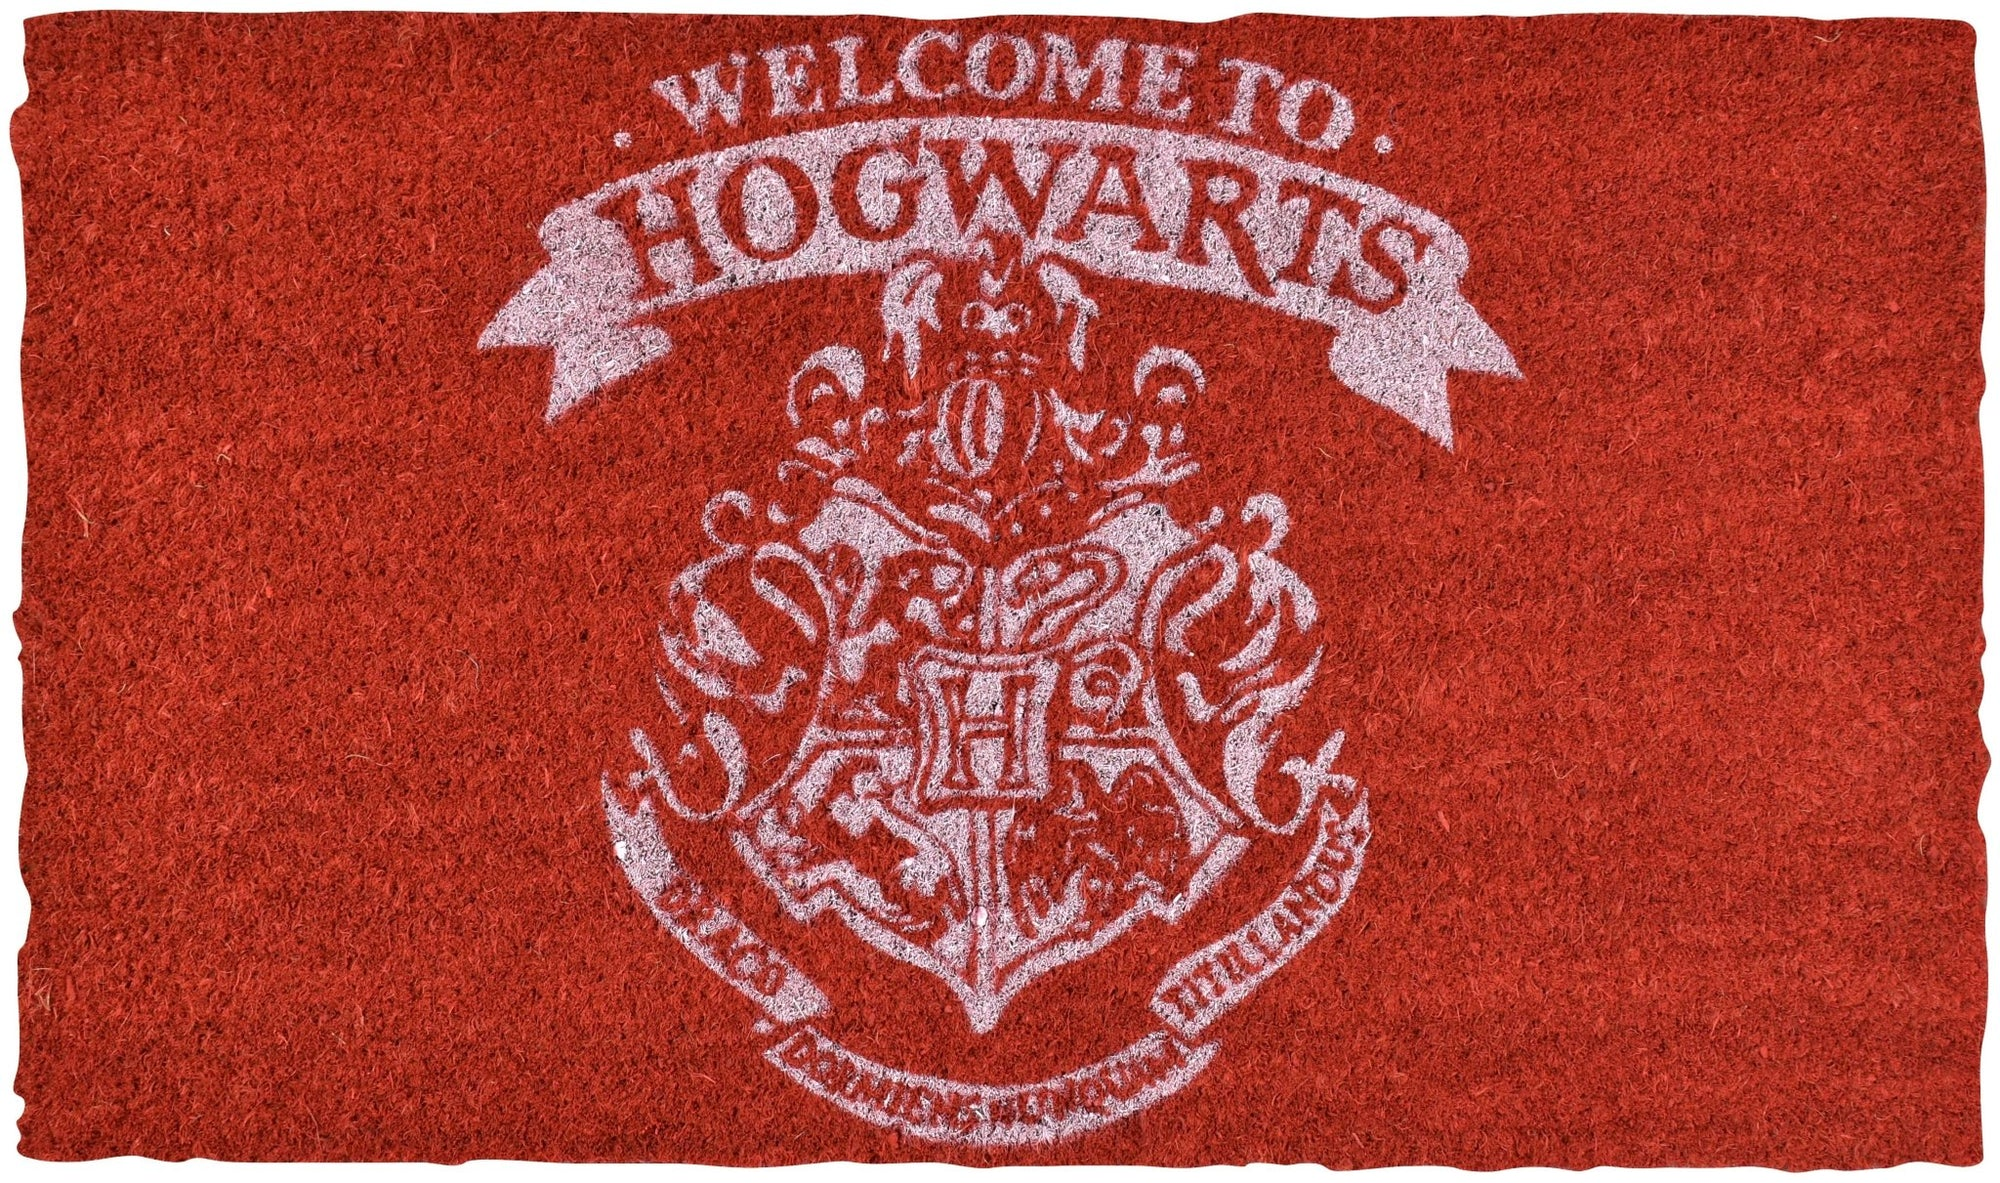 HARRY POTTER WELCOME TO HOGWARTS DOORMAT - EvoRetro Lets Game